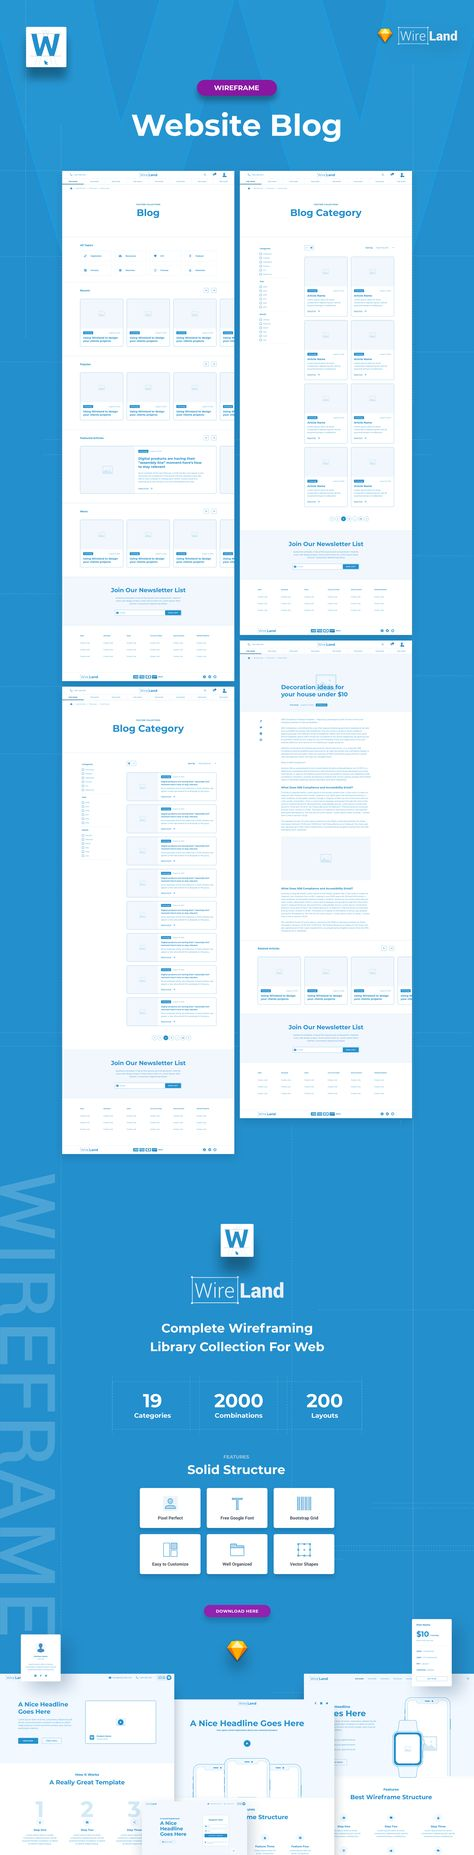 Blog Design - Wireframe Website Layout